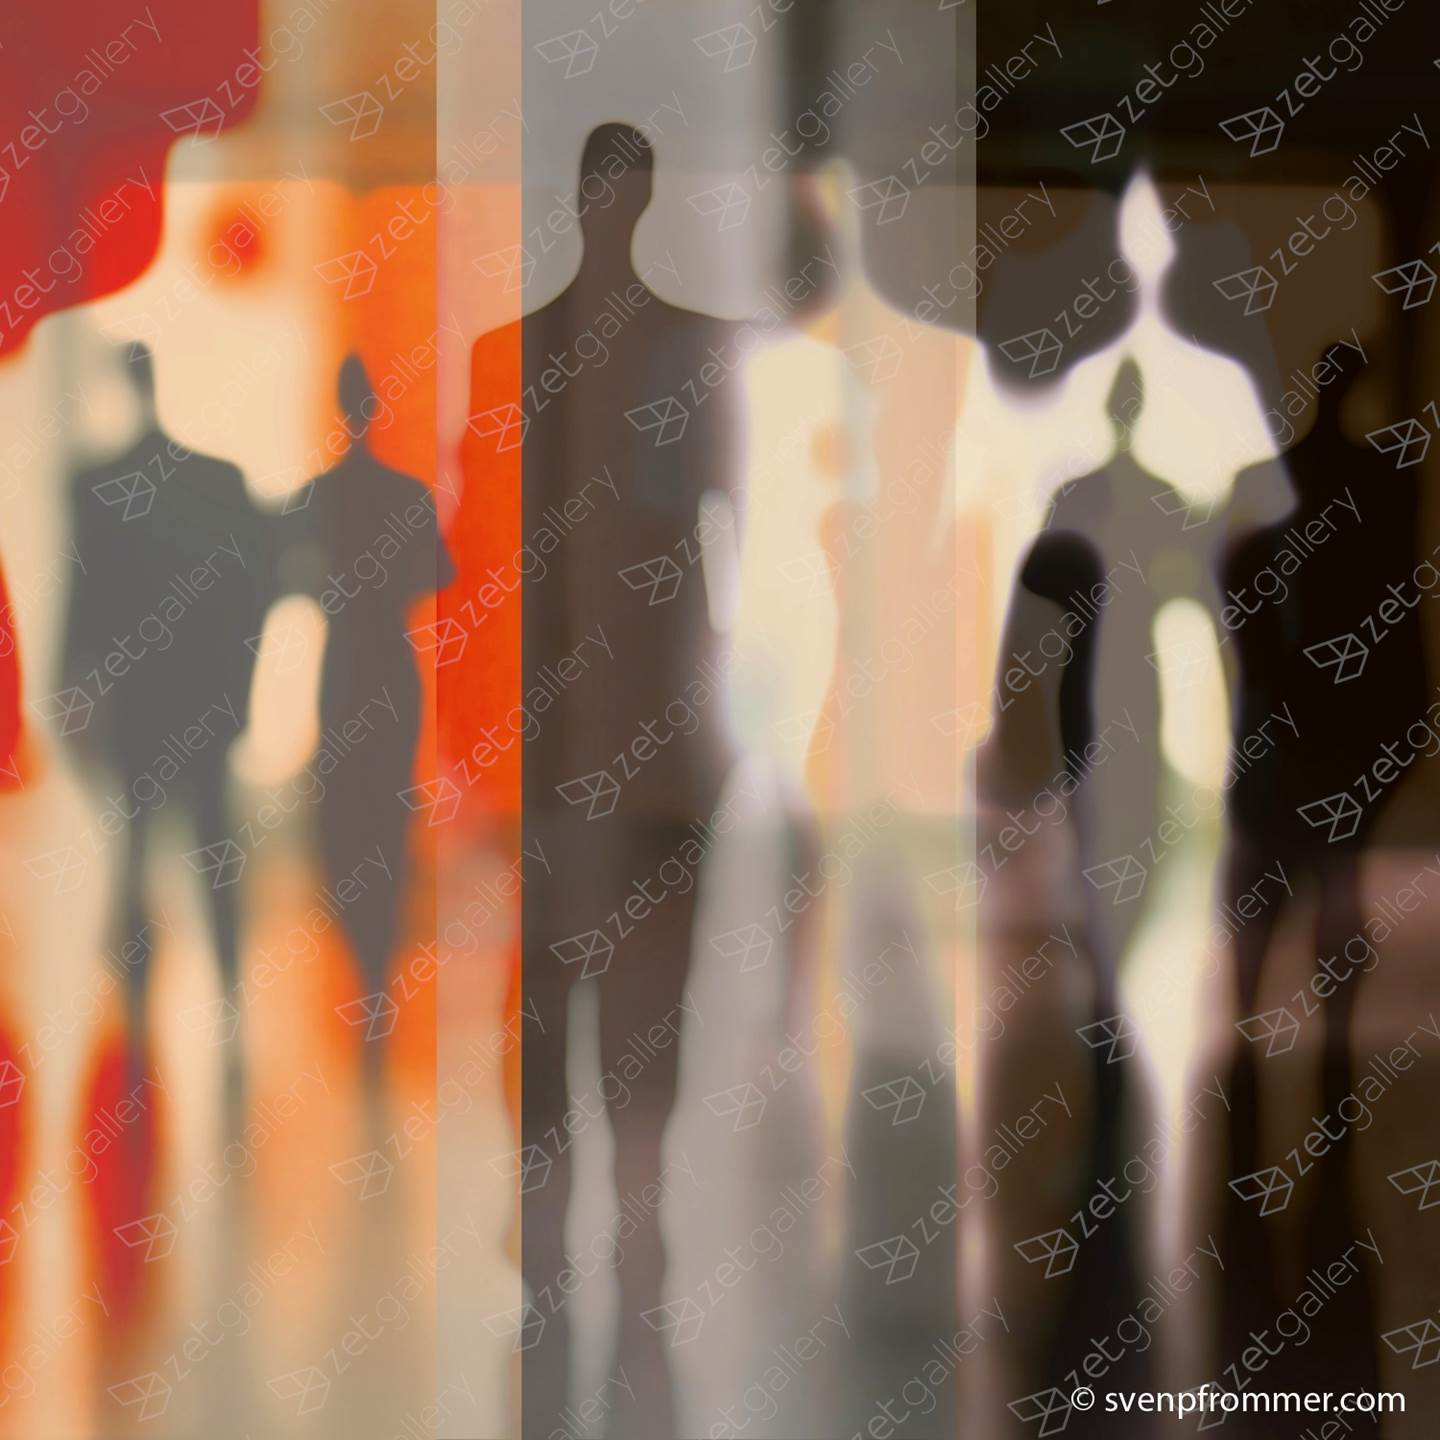 HUMAN FACTOR XXIV, original Human Figure Digital Photography by Sven Pfrommer